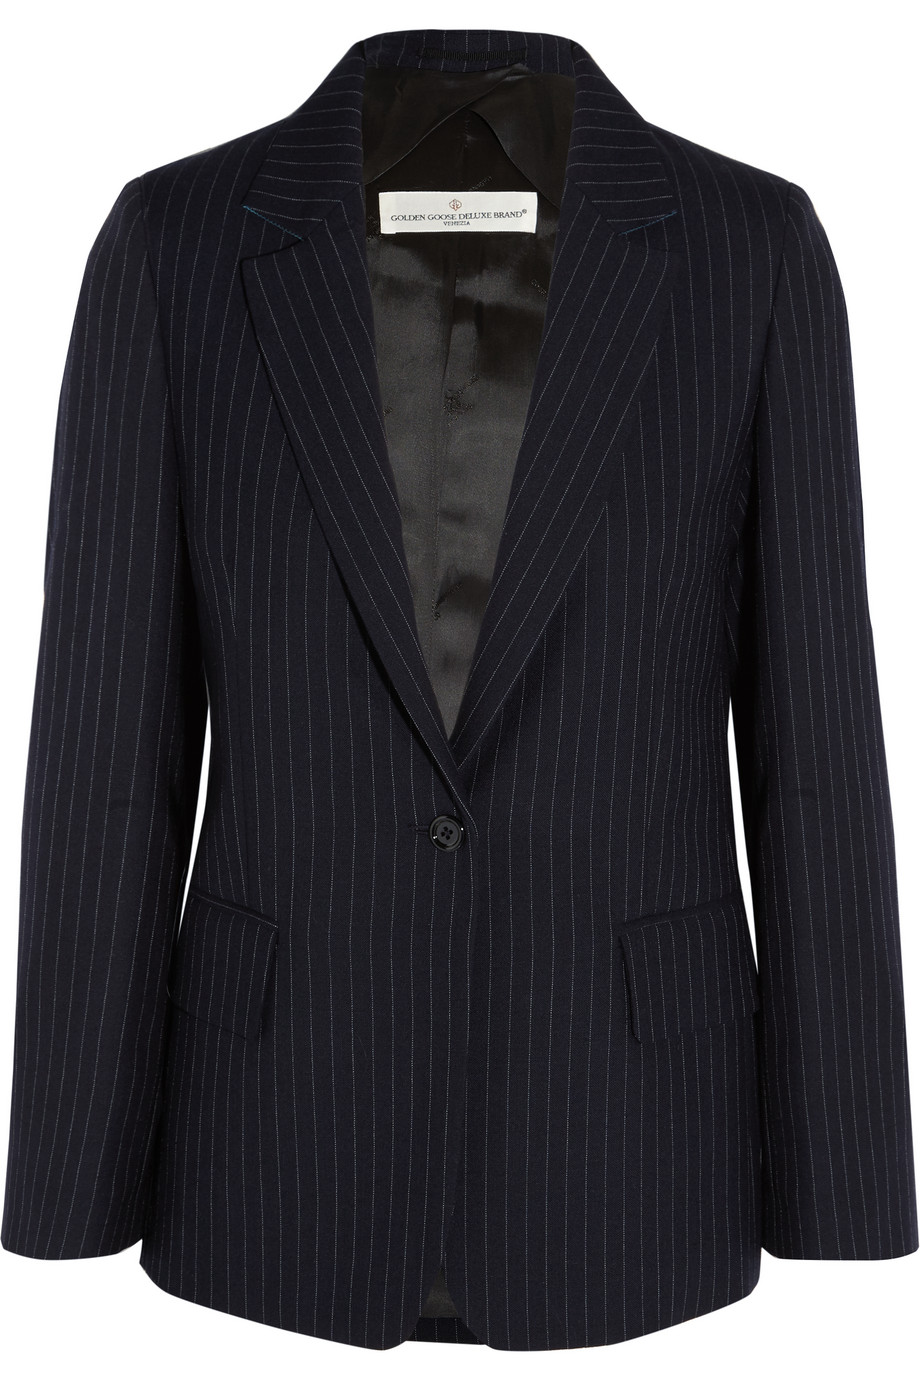 Pinstriped Wool and Mohair-Blend Blazer, Midnight Blue, Women's, Size: S